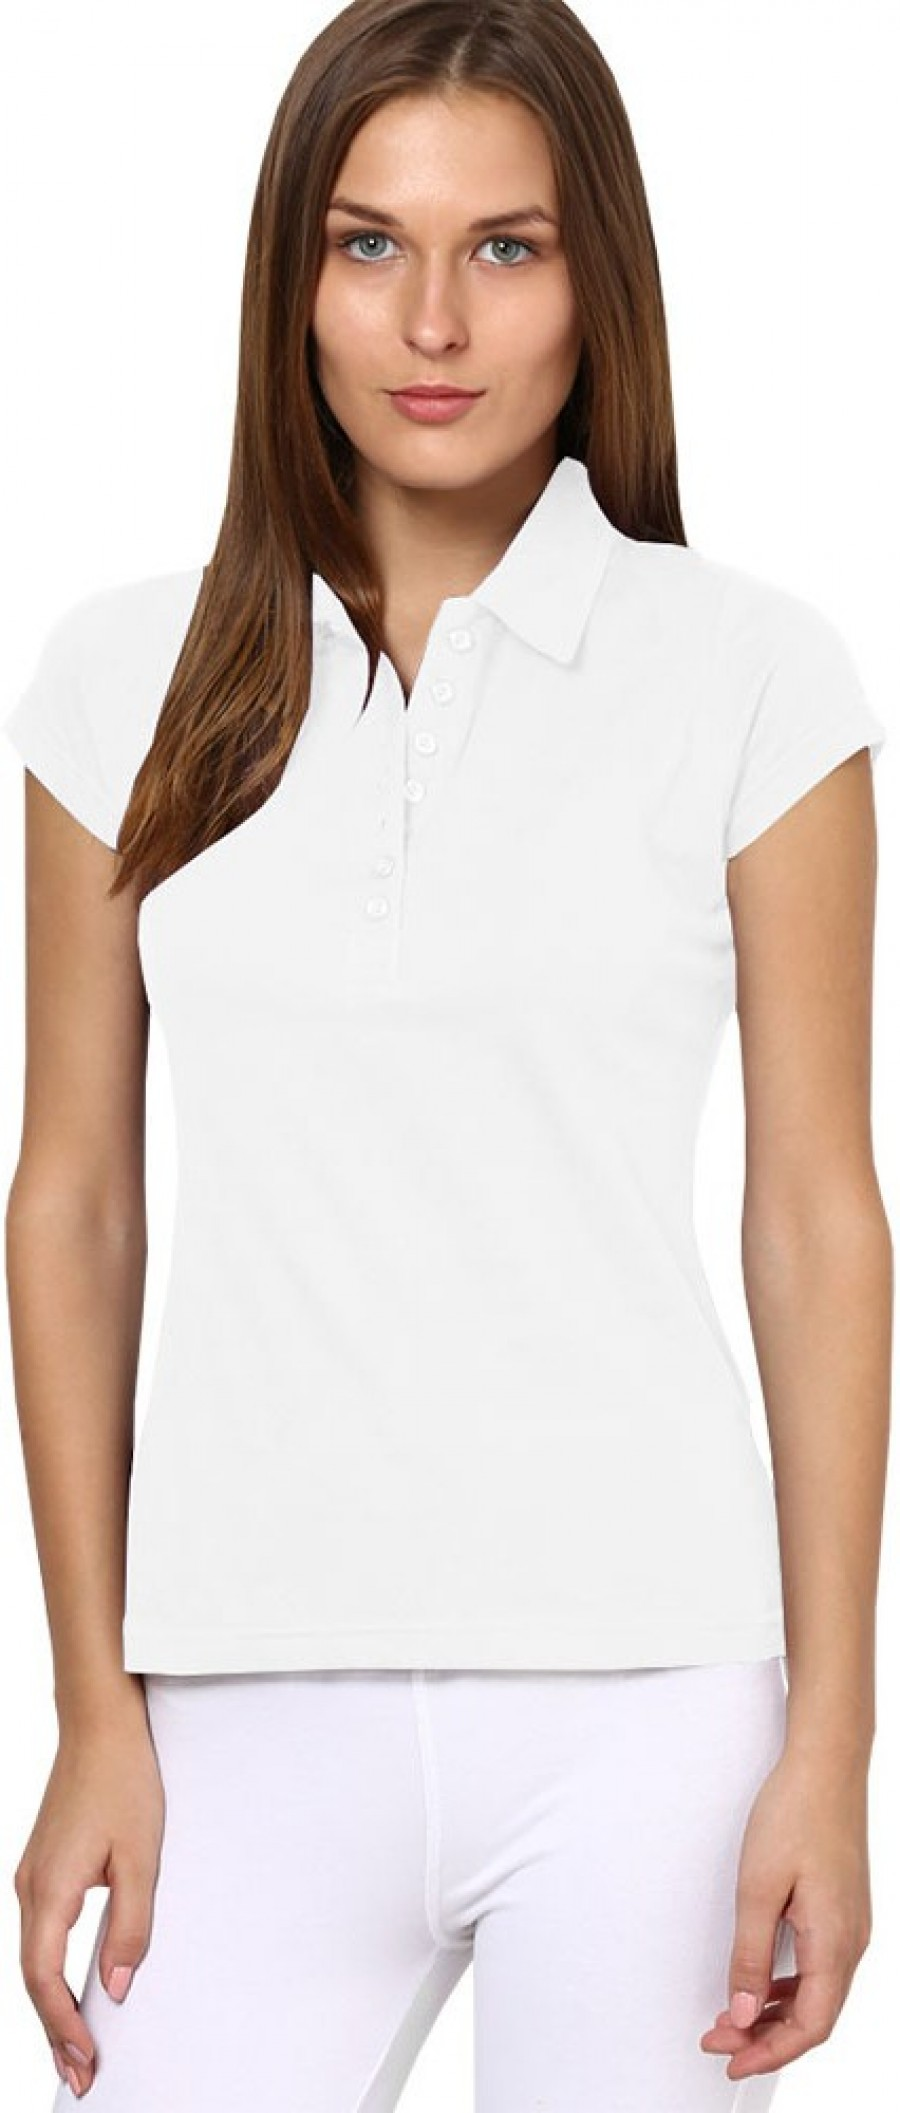 Buy Softwear Solid Women Polo White T Shirt Online